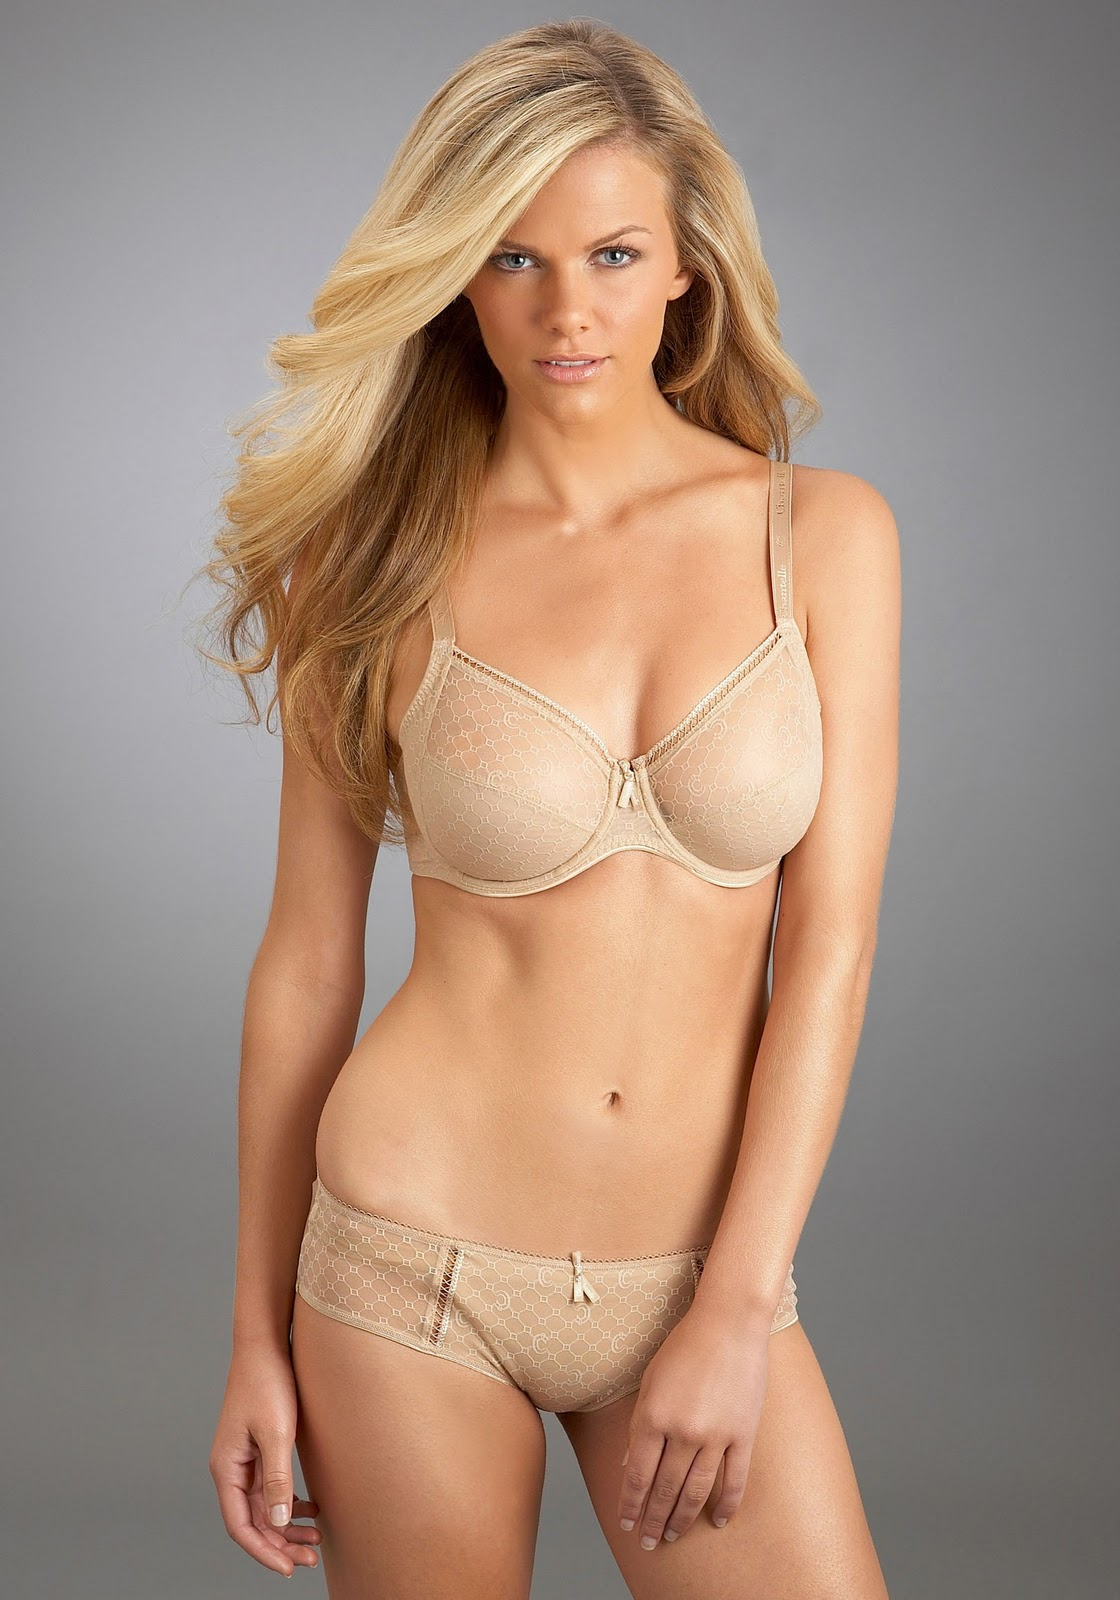 Brooklyn Decker Model Hot Pictures | Hot Famous Celebrities